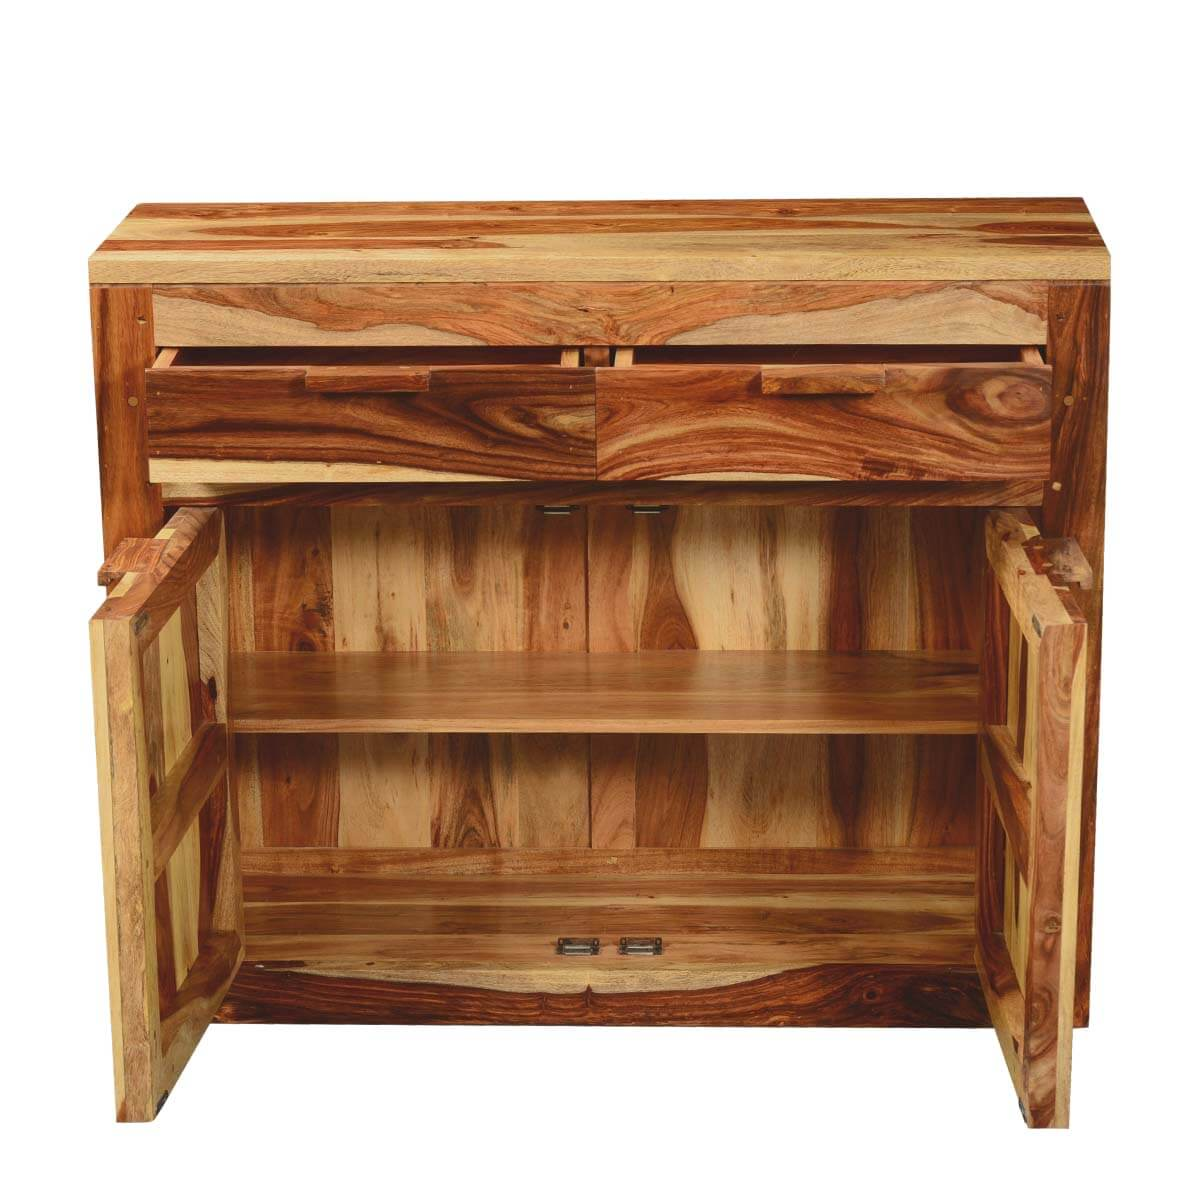 Dallas ranch solid wood acacia kitchen cabinet buffet for Rosewood ranch cost